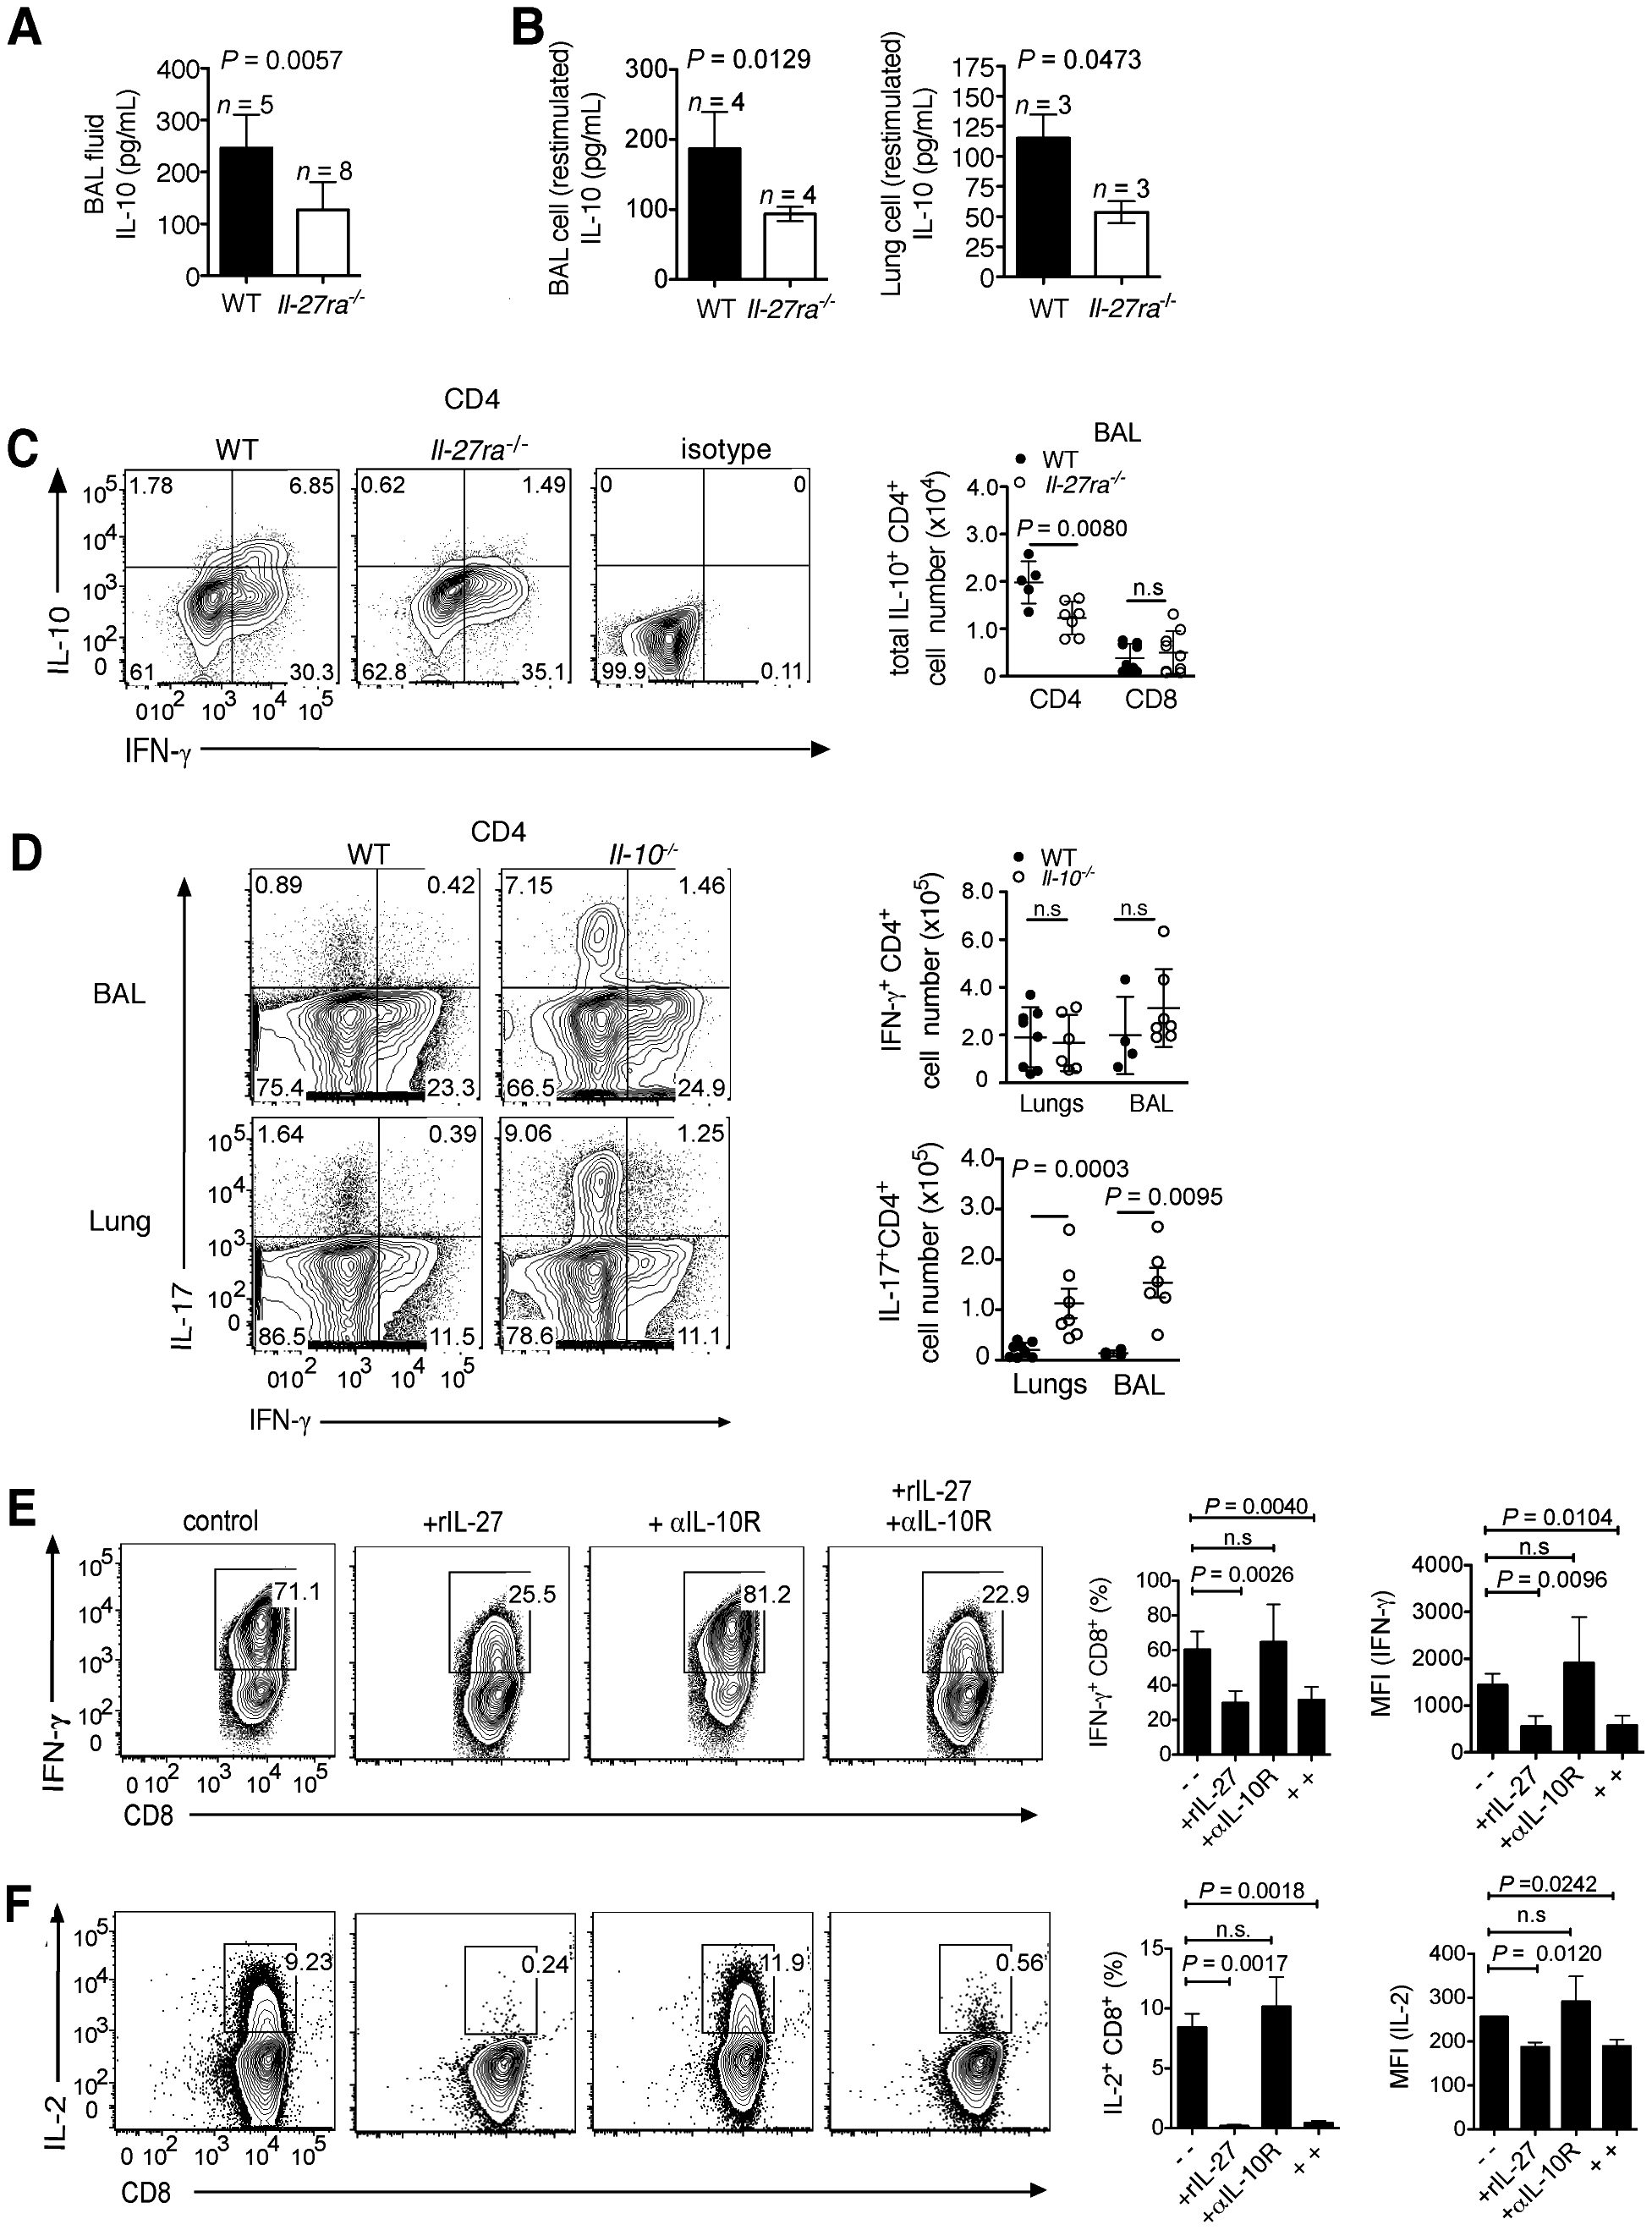 IL-27 directly modulates IFN-γ production by T cells and indirectly regulates IL-17 response via IL-10.